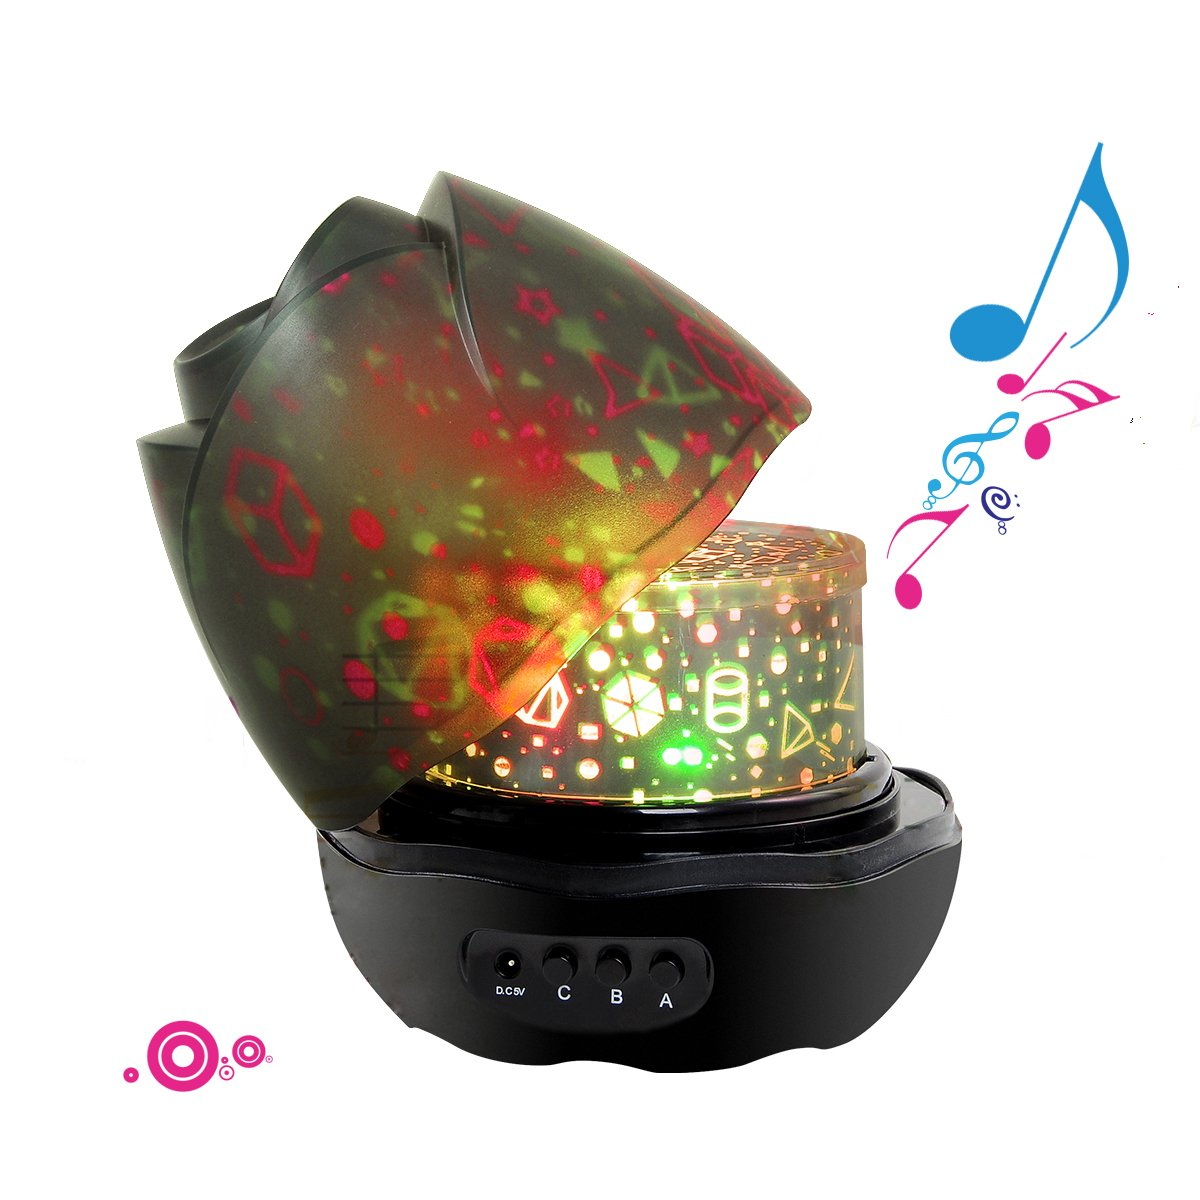 Lukovee Baby Music Night Light, Updated Rotating Projector with Animal Forest Patterns Desk Bedroom Lamps with 12 Songs for Kids Boys Girls Gift